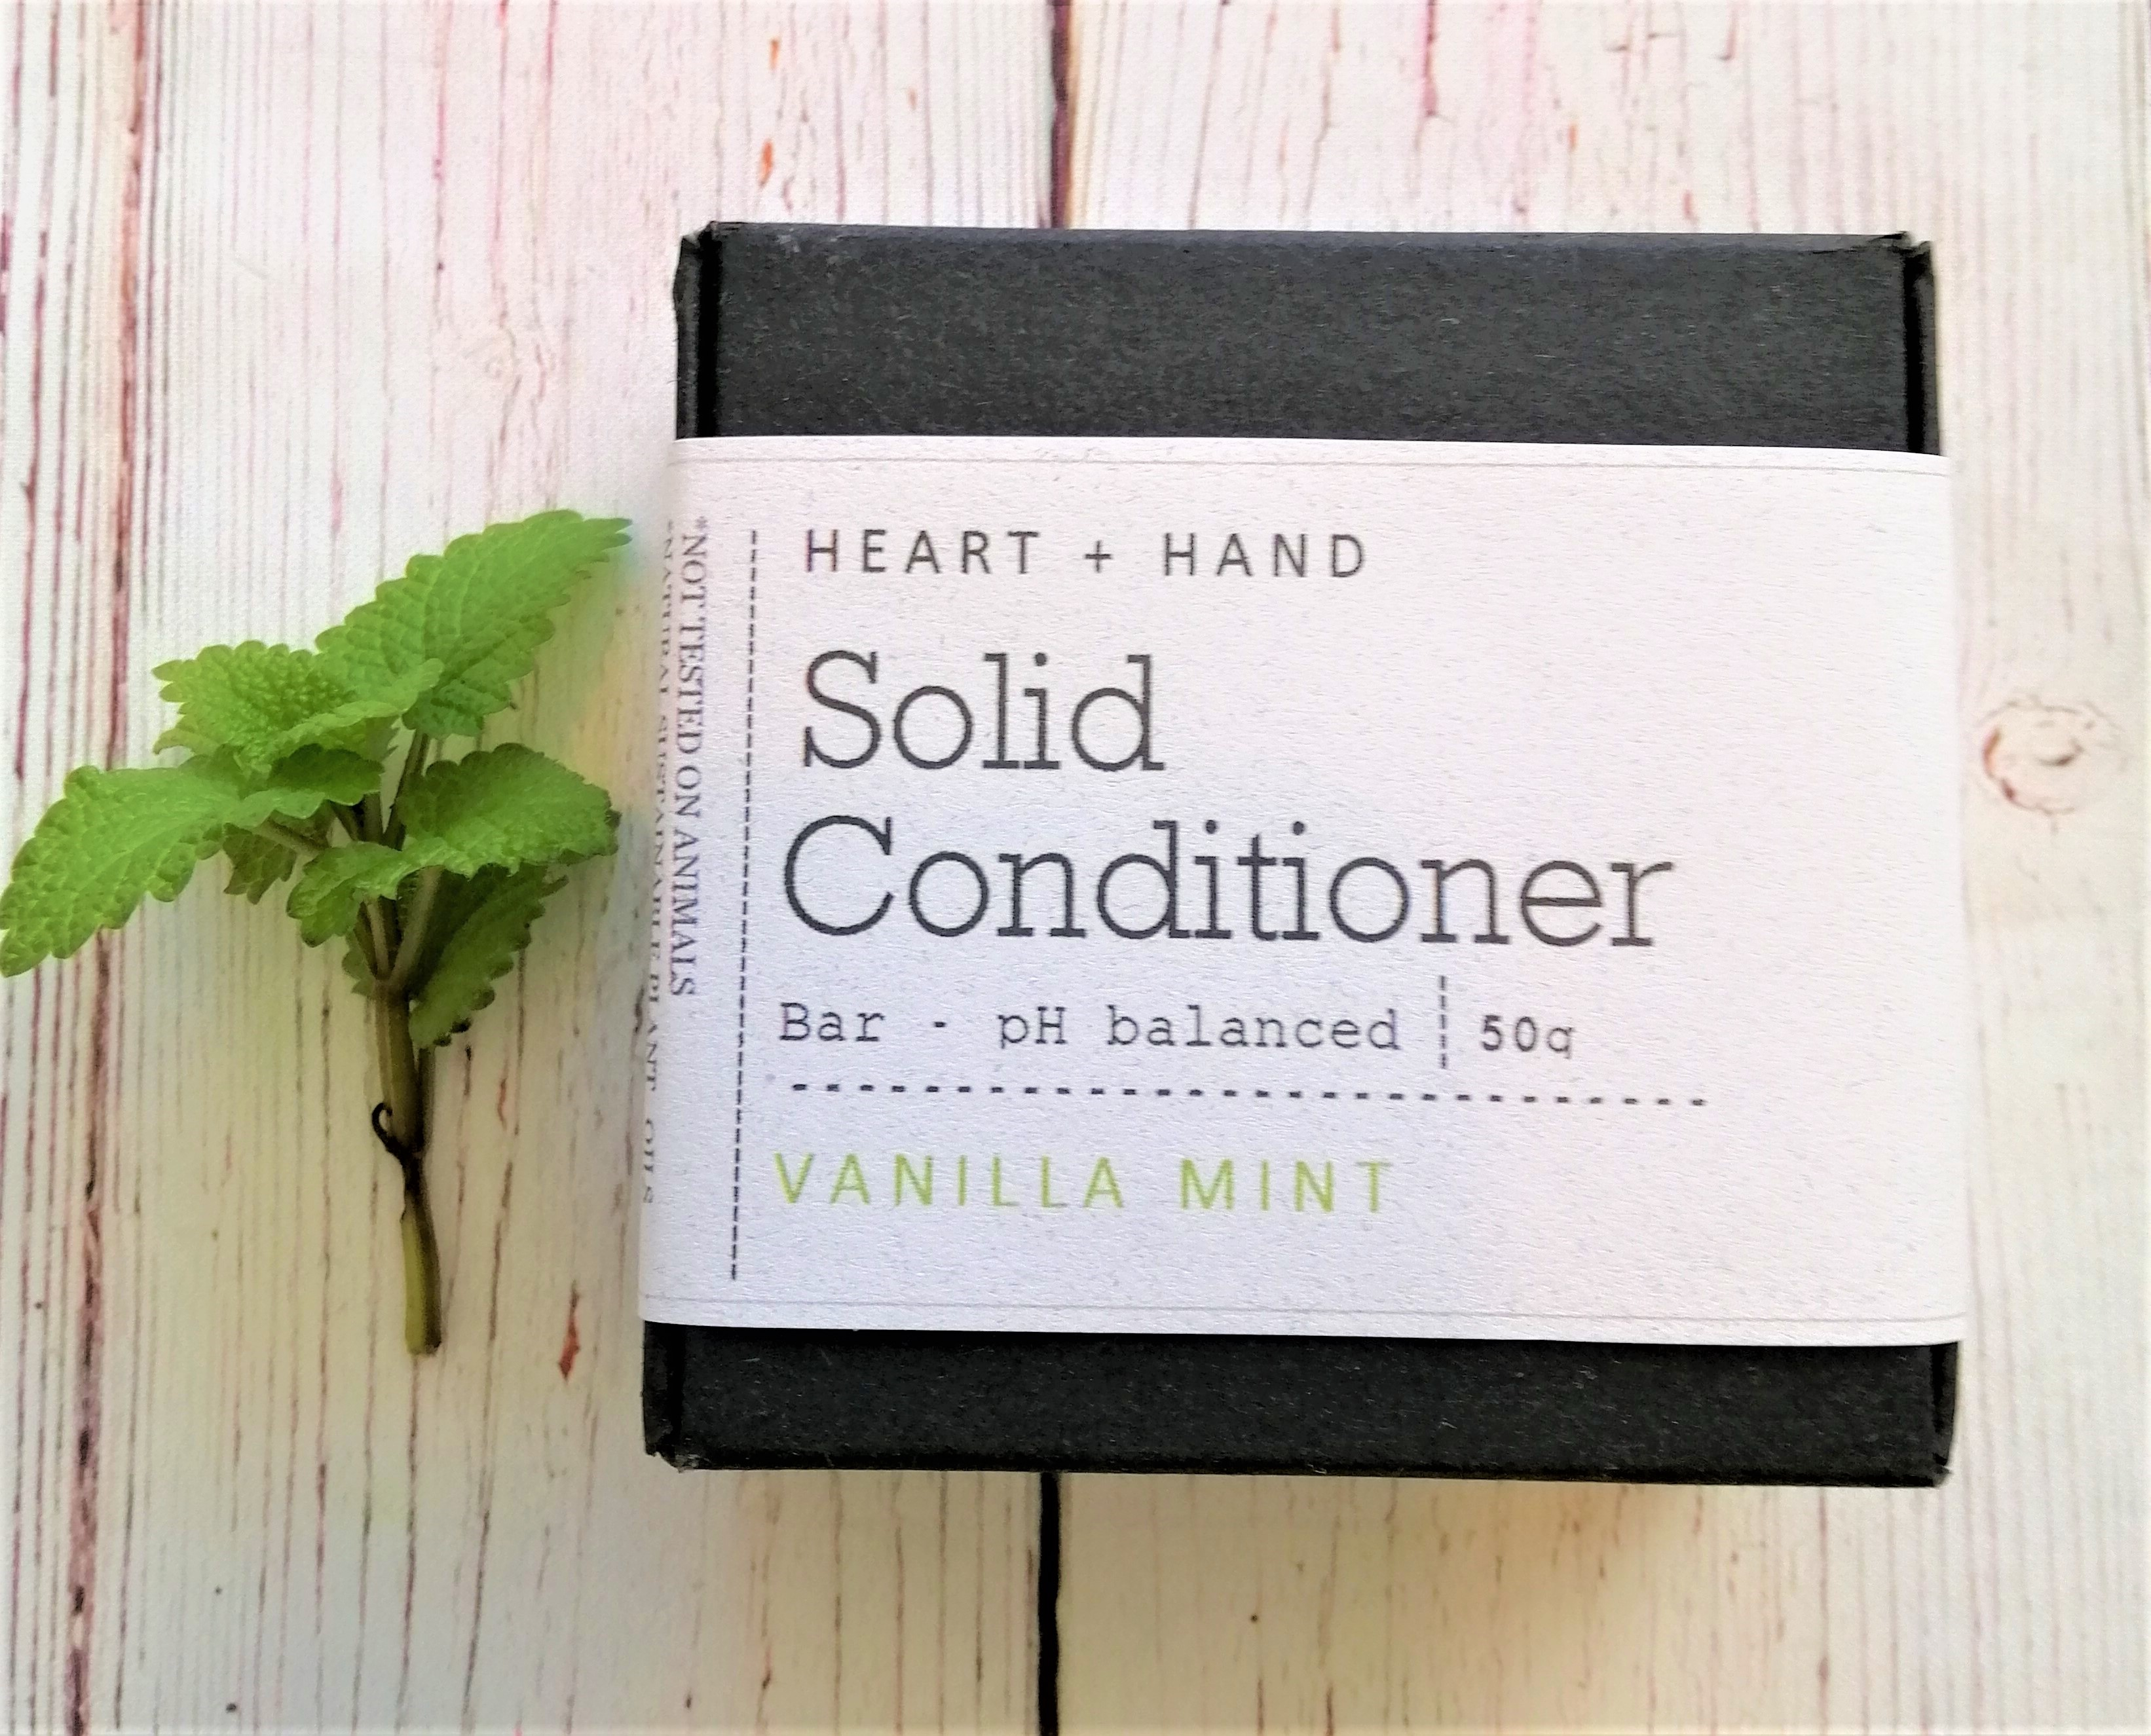 Vanilla mint conditioner (2)